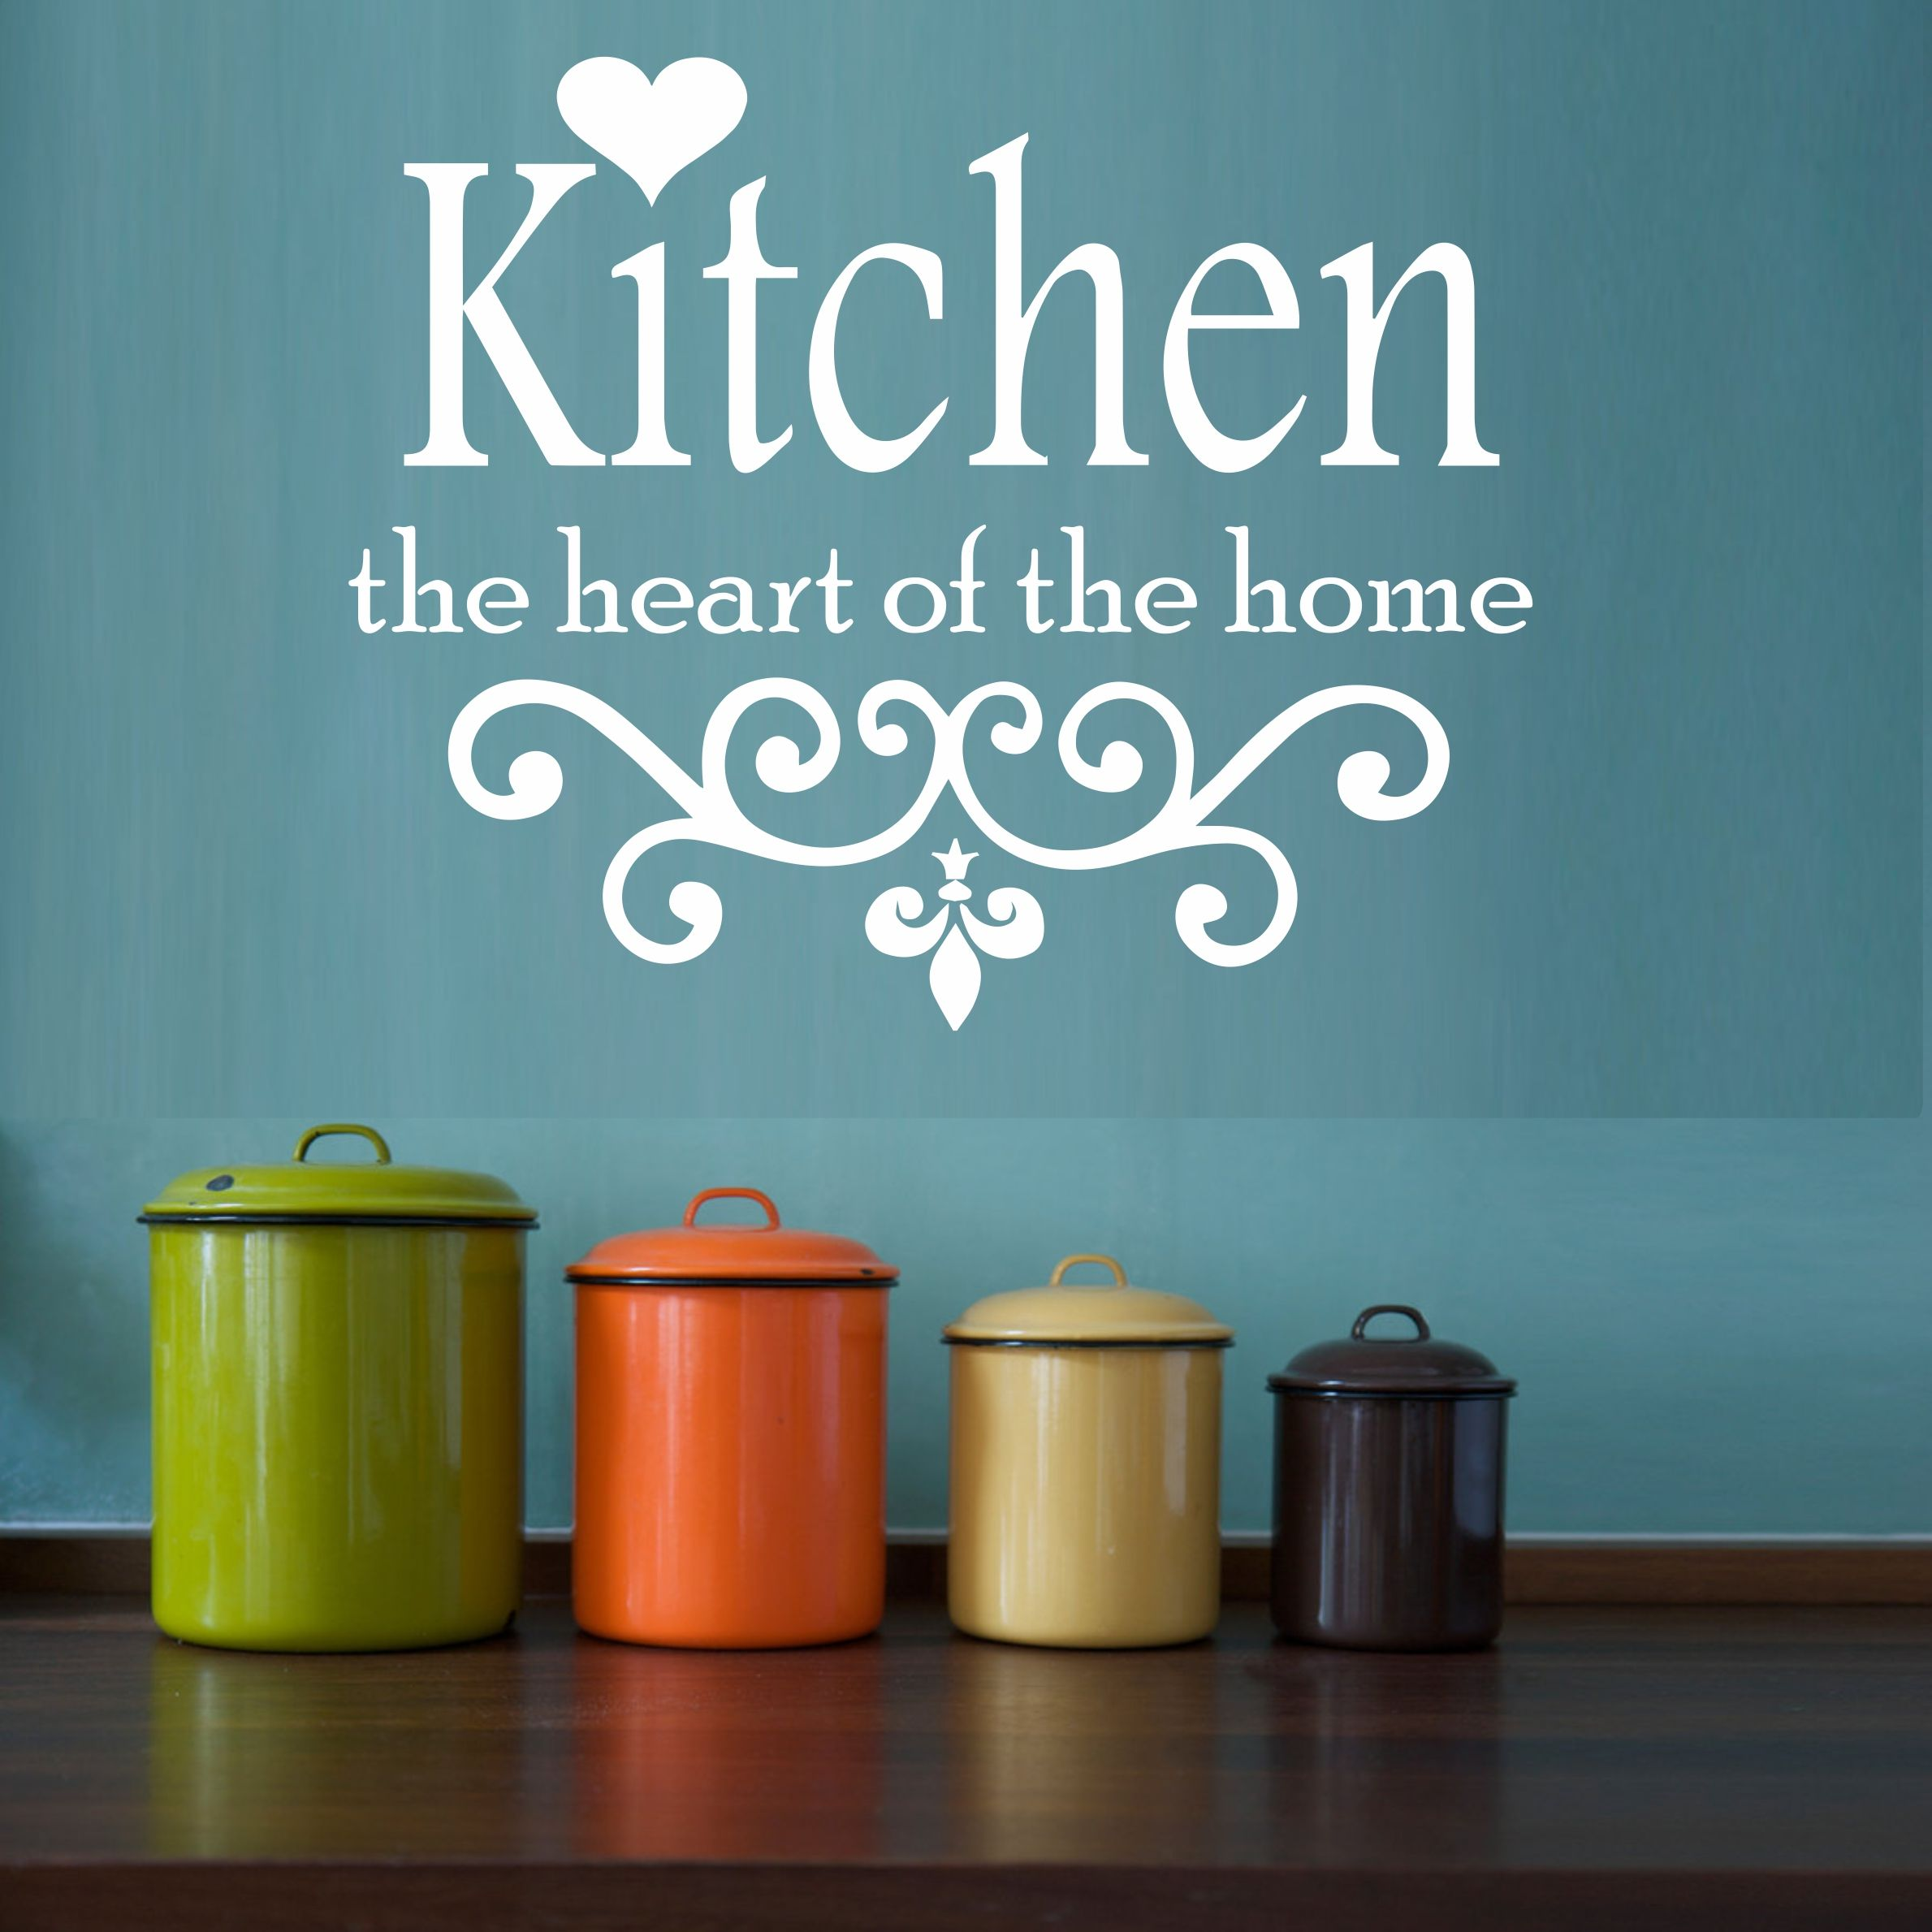 Kitchen Heart Of The Home Custom Kitchen The Heart Of The Home  Home Design Design Decoration